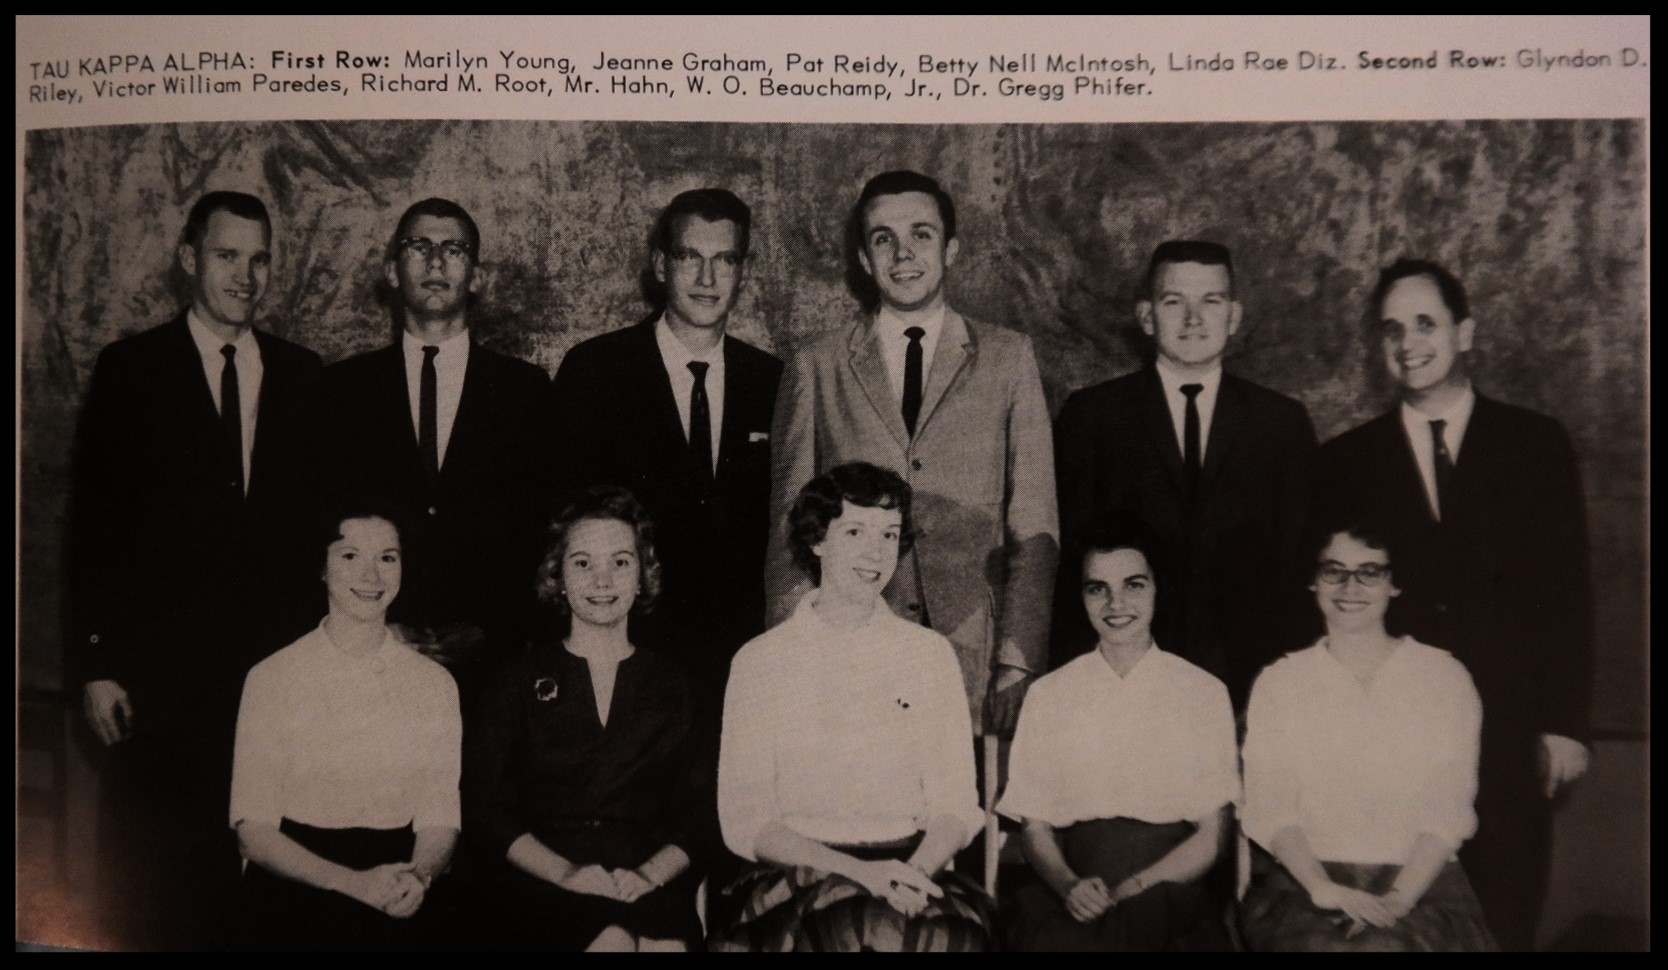 1961 - 1962 Tau Kappa Alpha Honorary